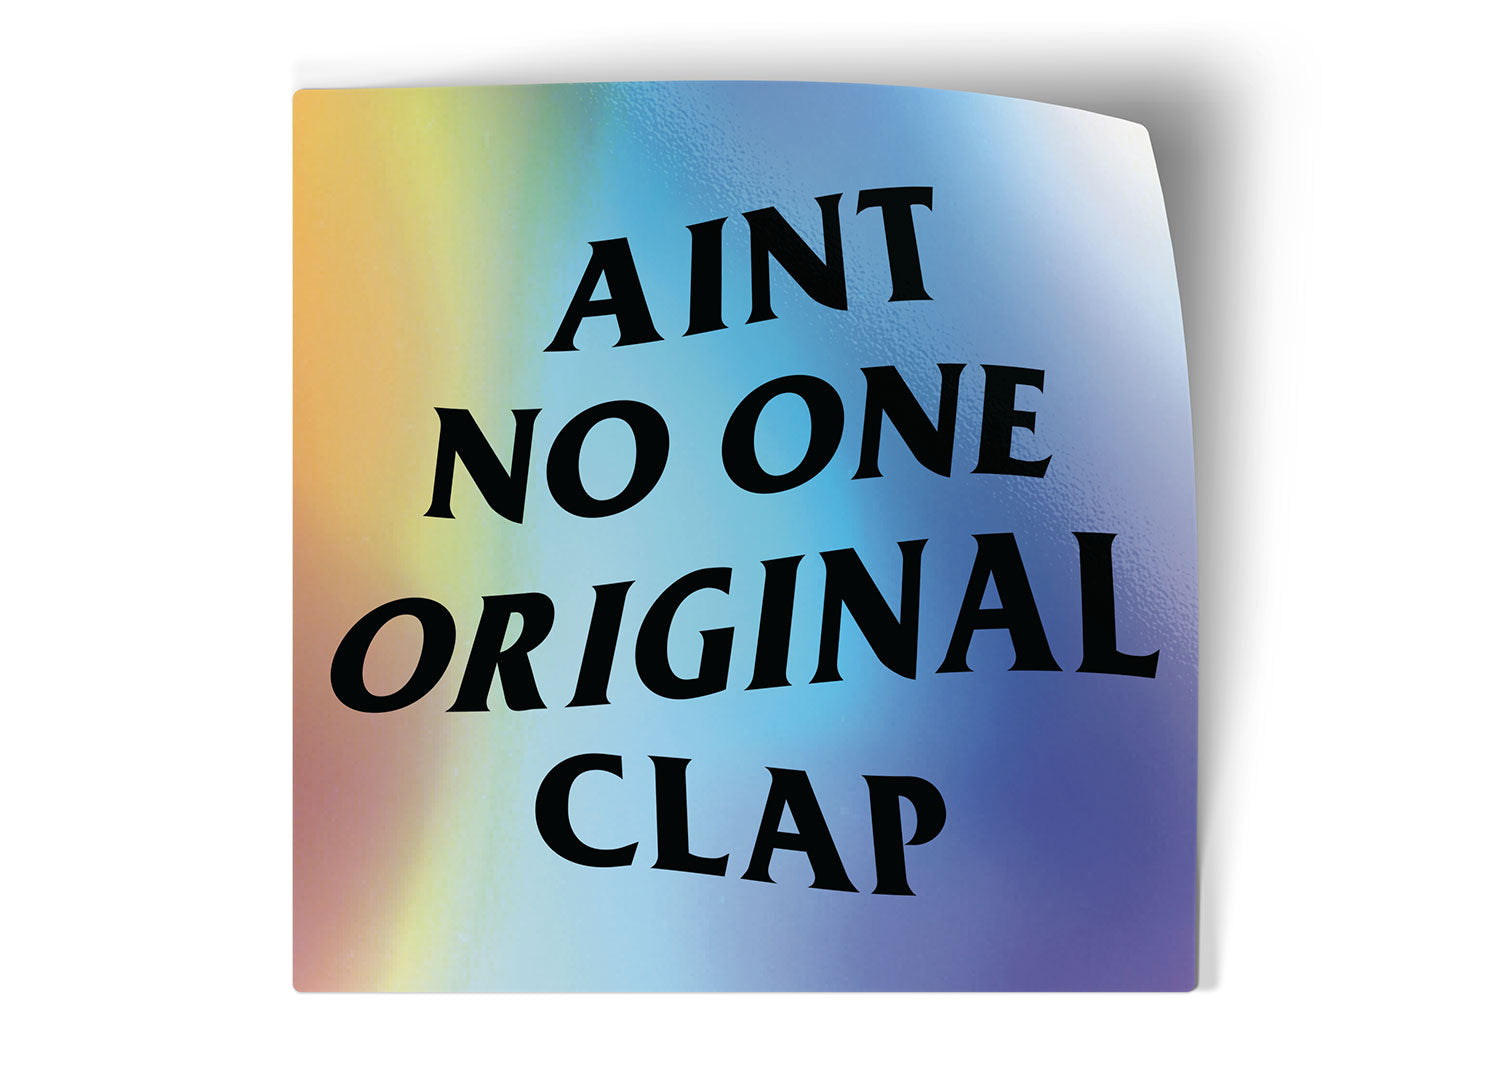 logic limited corp anti social social club parody aint no one original clap basic design bitches boring funny dumb sticker